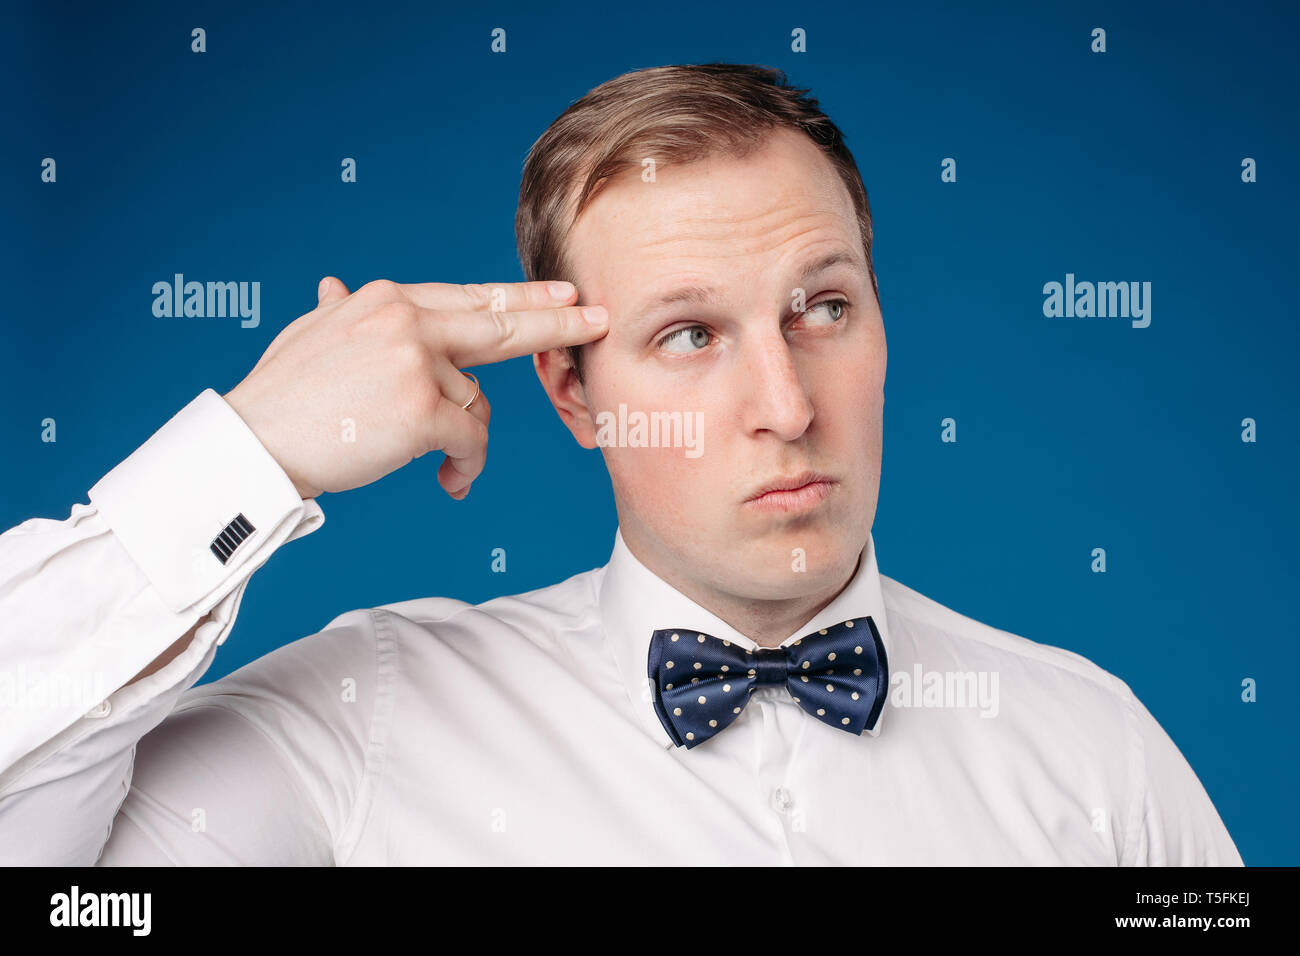 Man wearing white shirt and bow tie showing sign of pistol - Stock Image